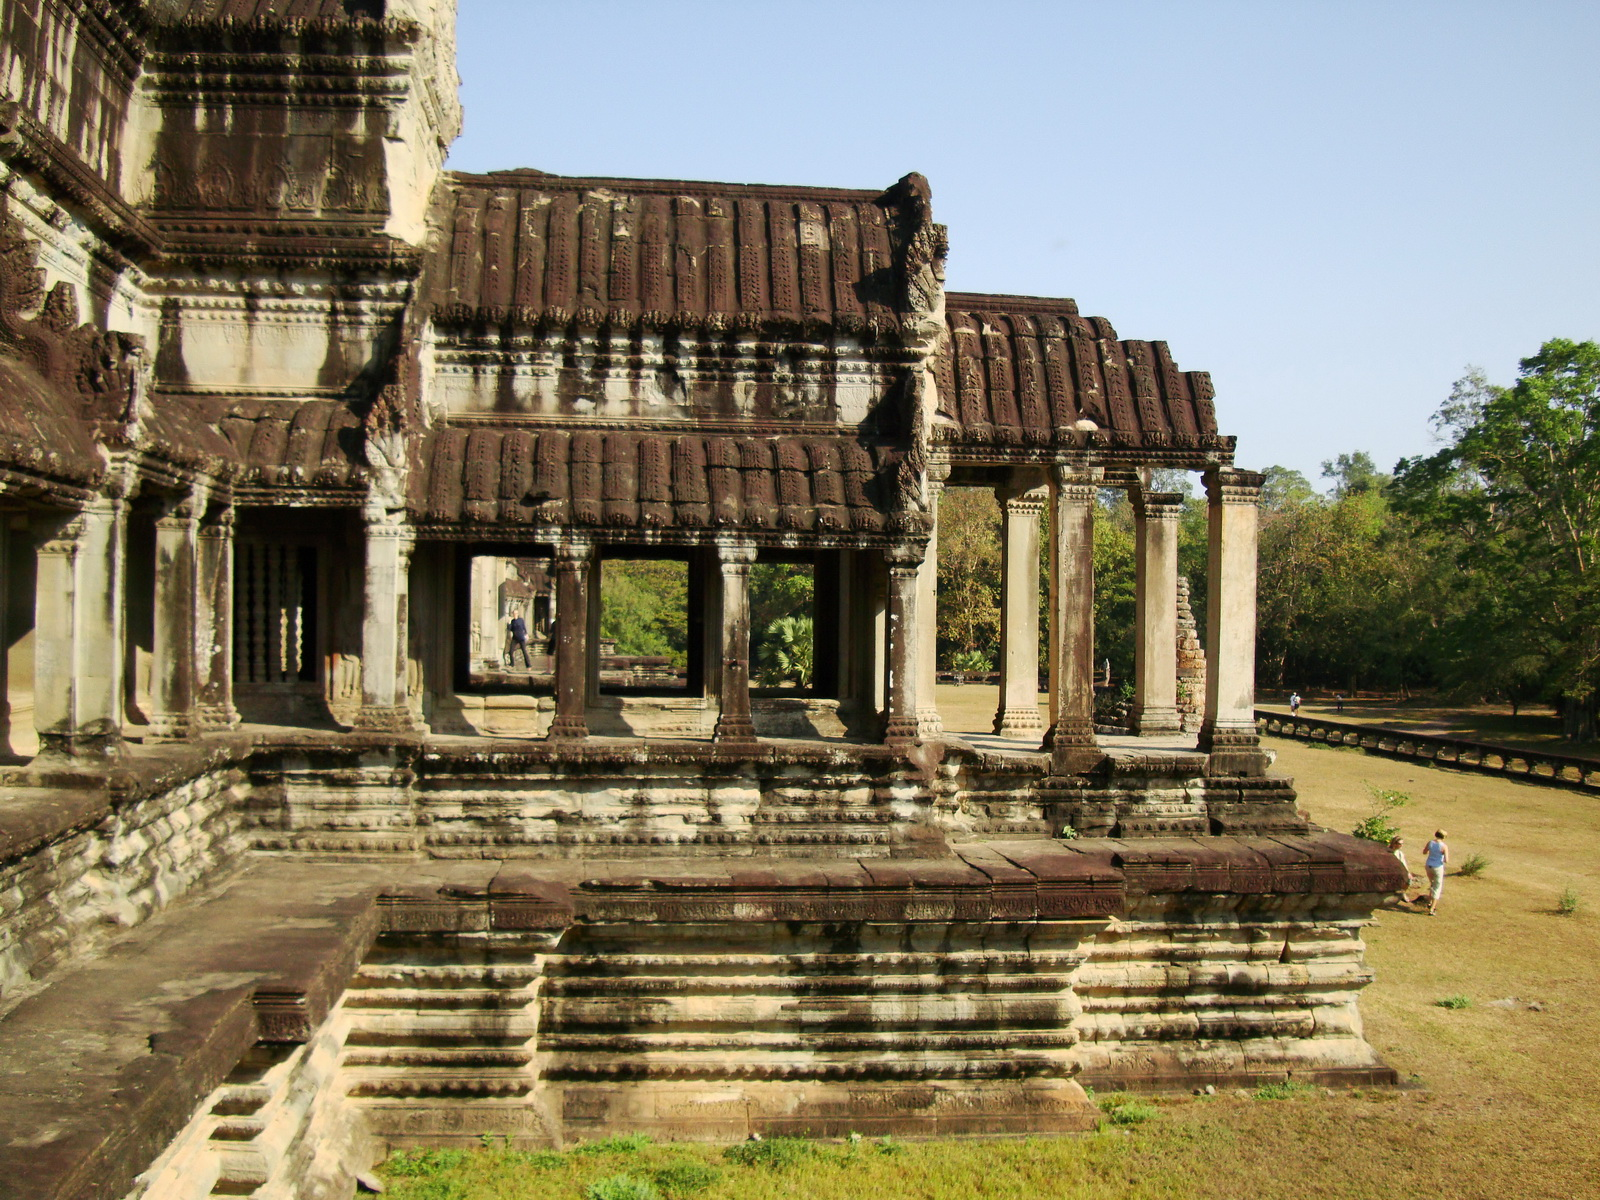 Angkor Wat Khmer architecture eastern gallery entrance 07